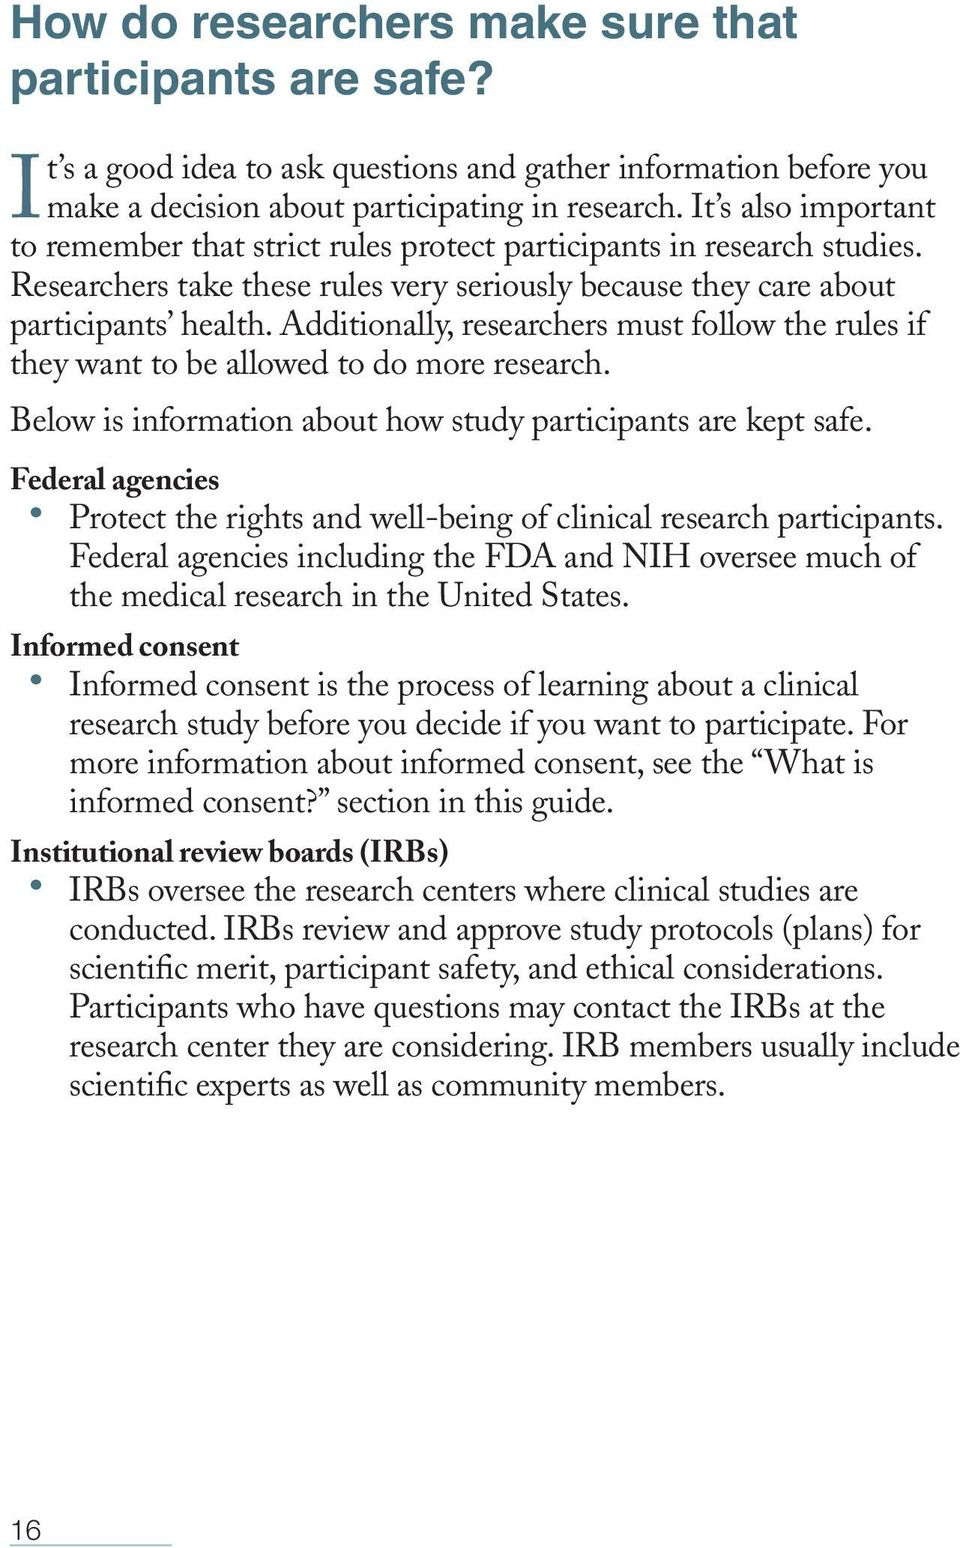 Additionally, researchers must follow the rules if they want to be allowed to do more research. Below is information about how study participants are kept safe.